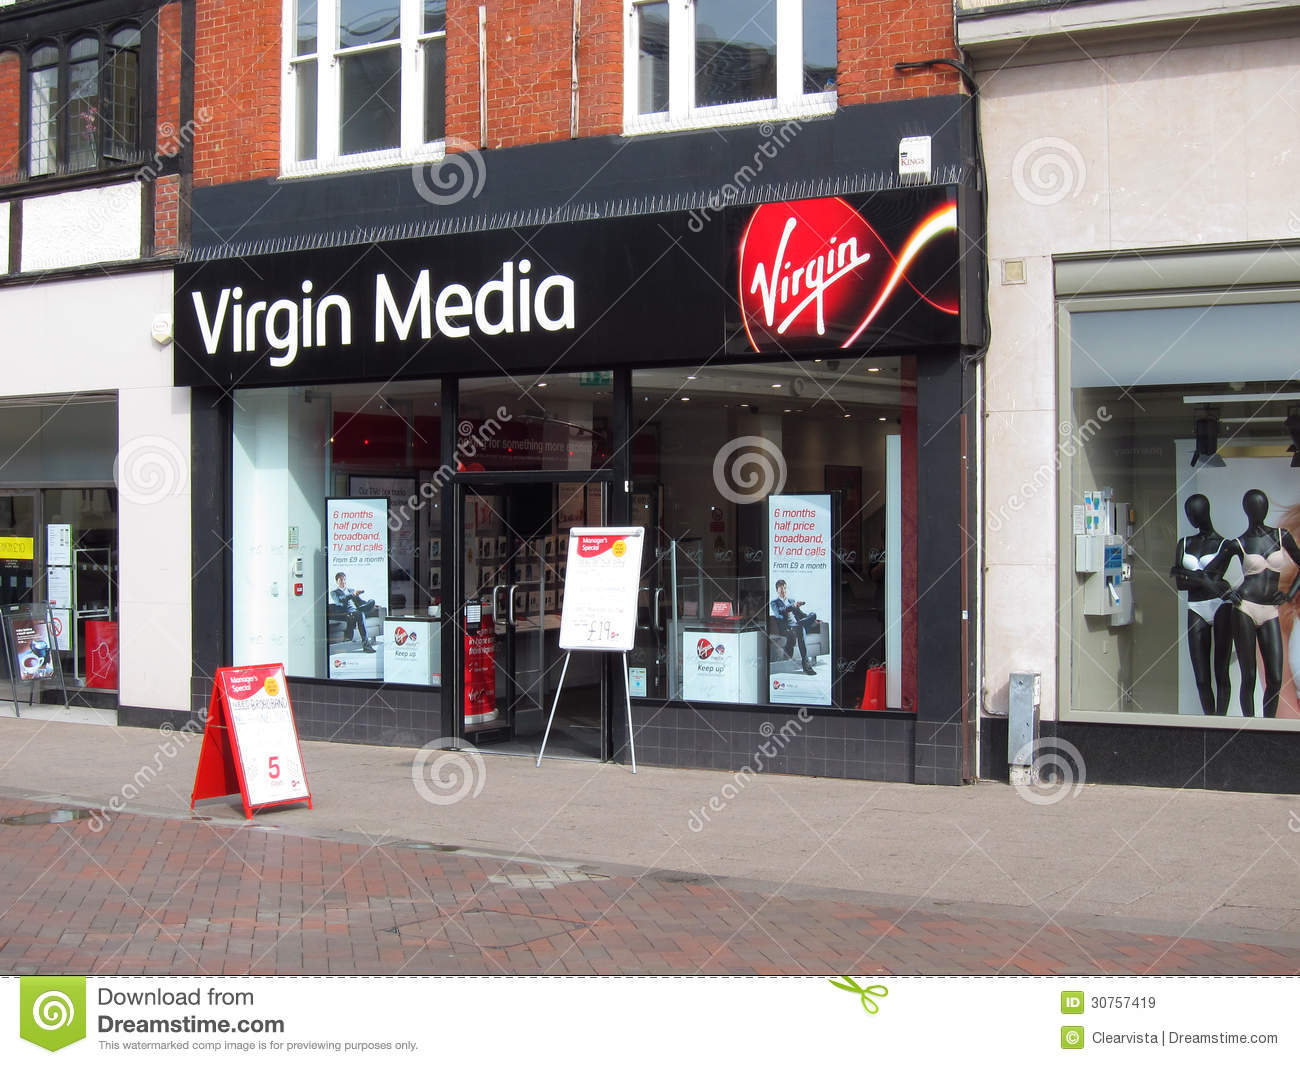 mobile fixed dialing Virgin